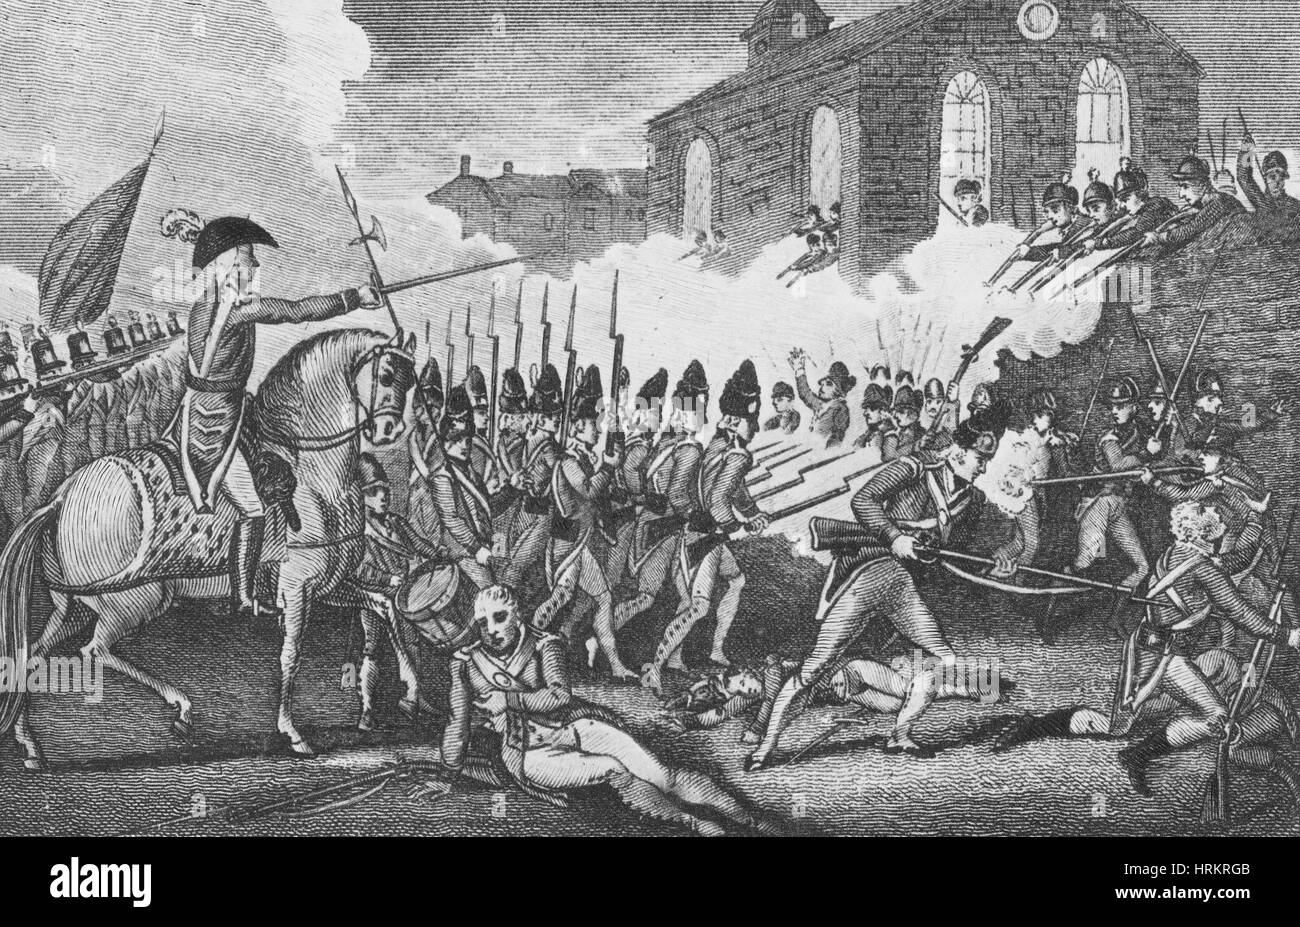 Battle of Concord, 1775 - Stock Image